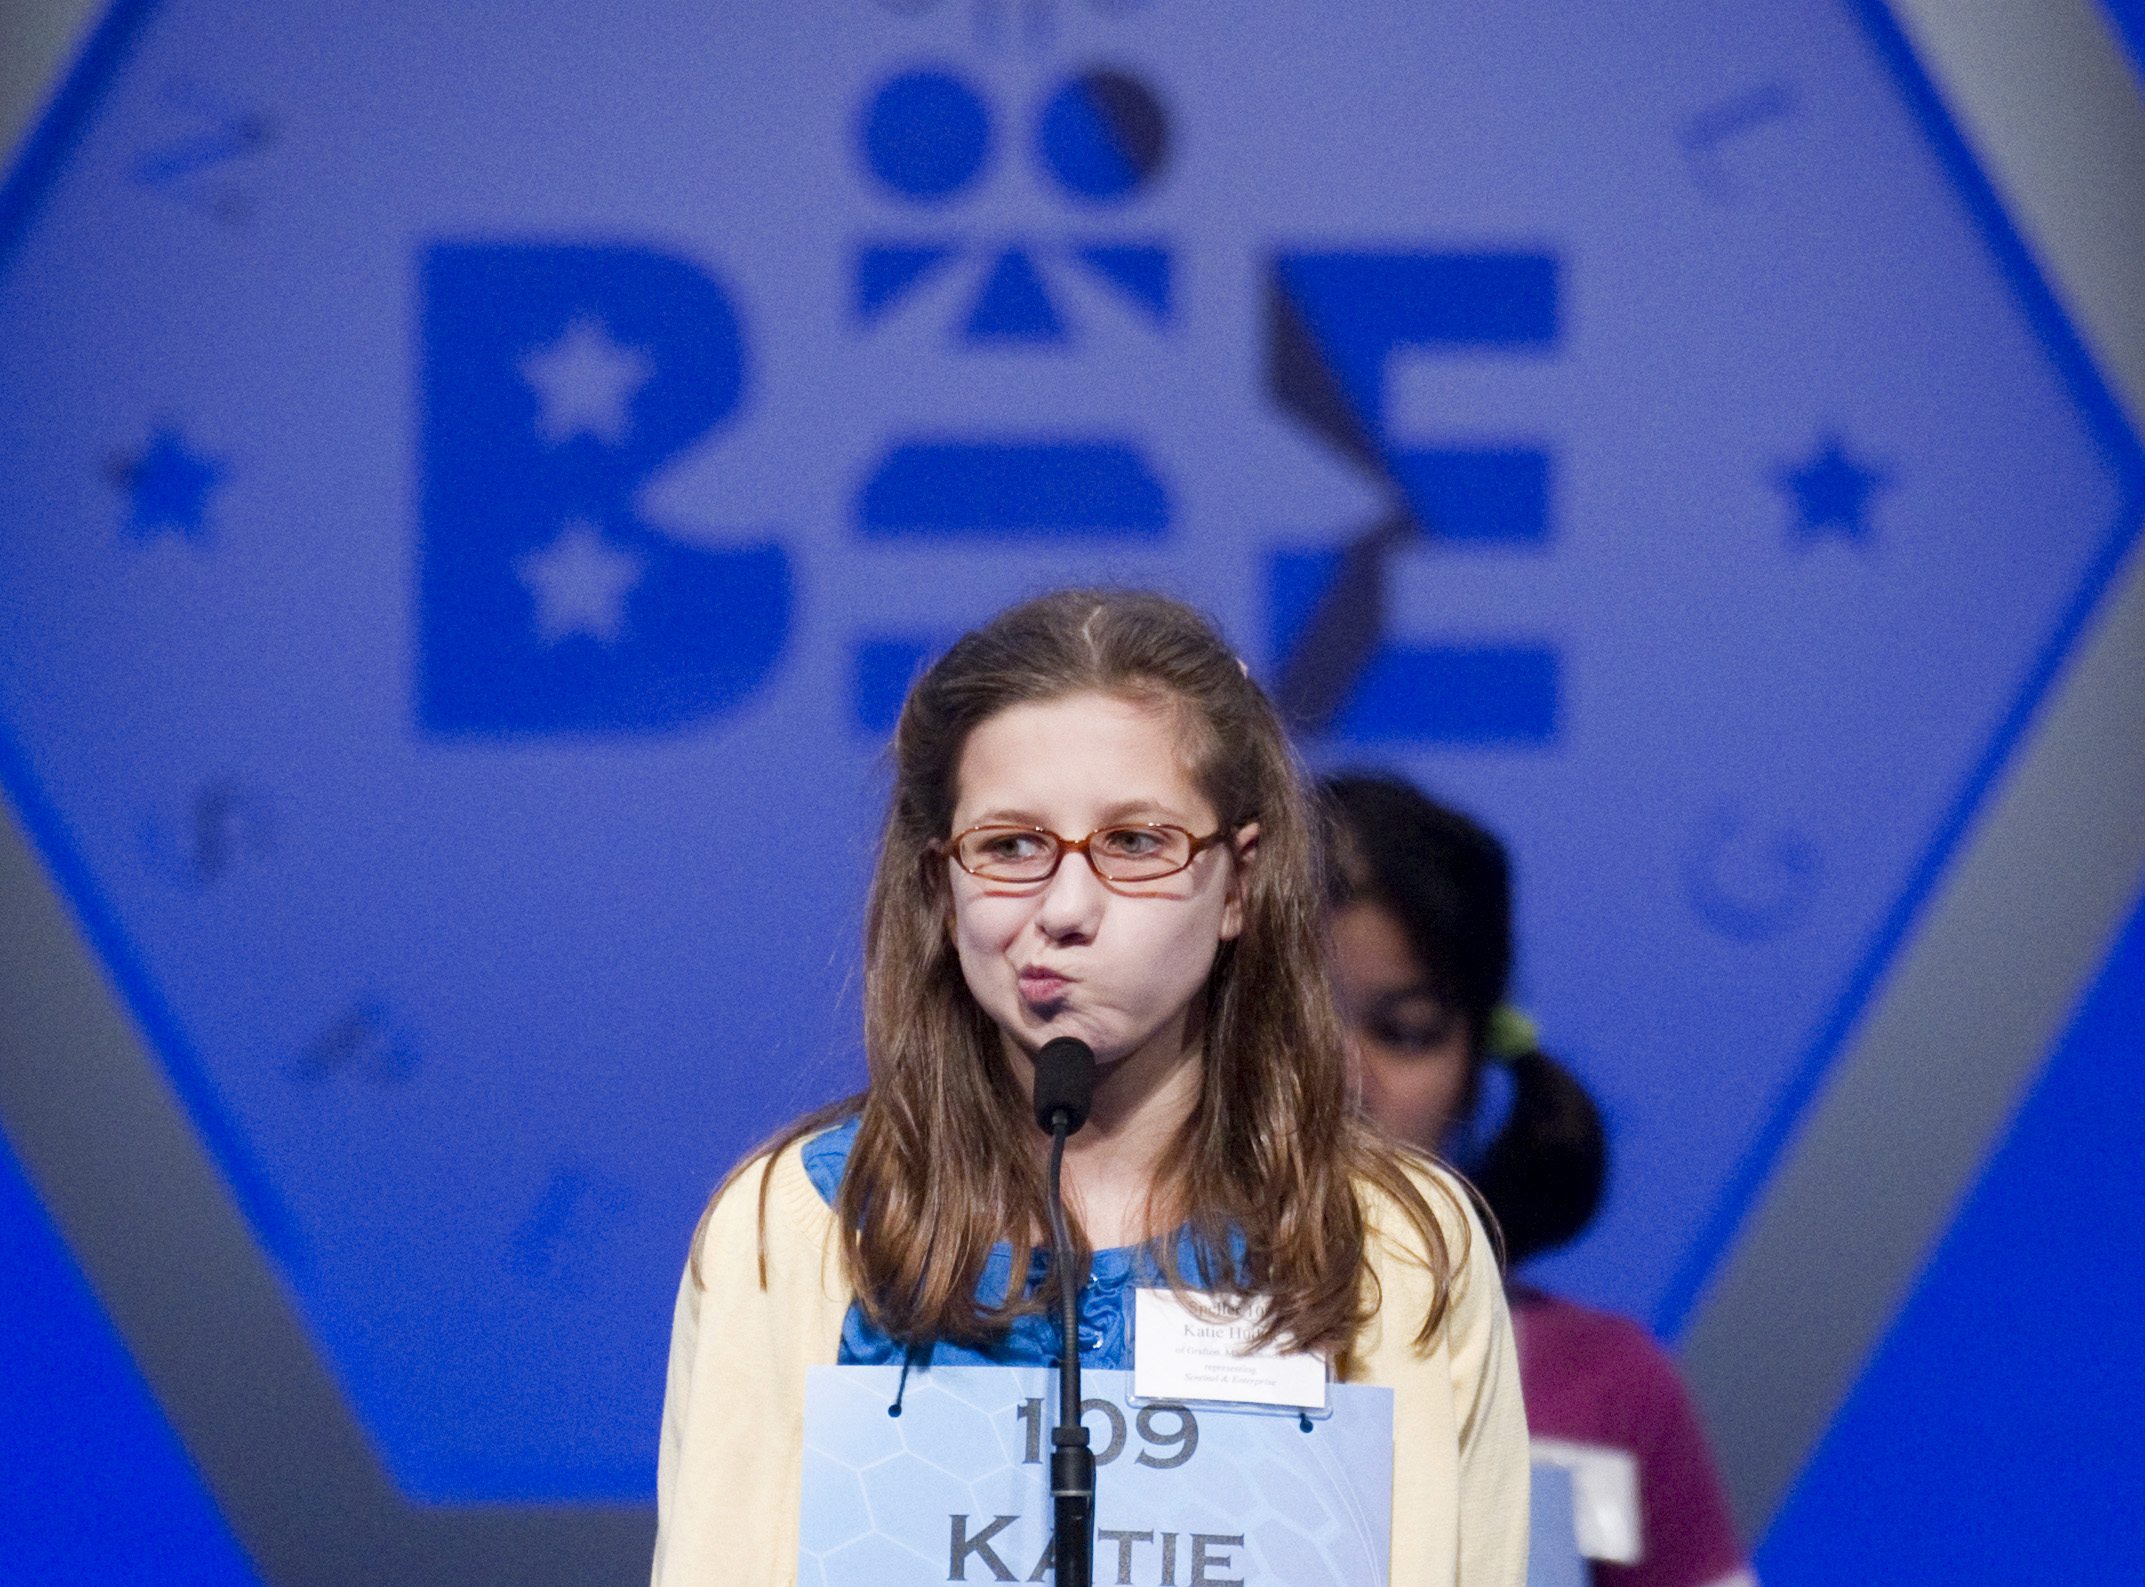 Katie A. Hudek, 12, from Fitchburg, Mass. searches for the correct spelling for &quottokamak&quot during round three of the National Spelling Bee, Wednesday, June 1, 2011, in National Harbor, Md.  She answered the question correctly.